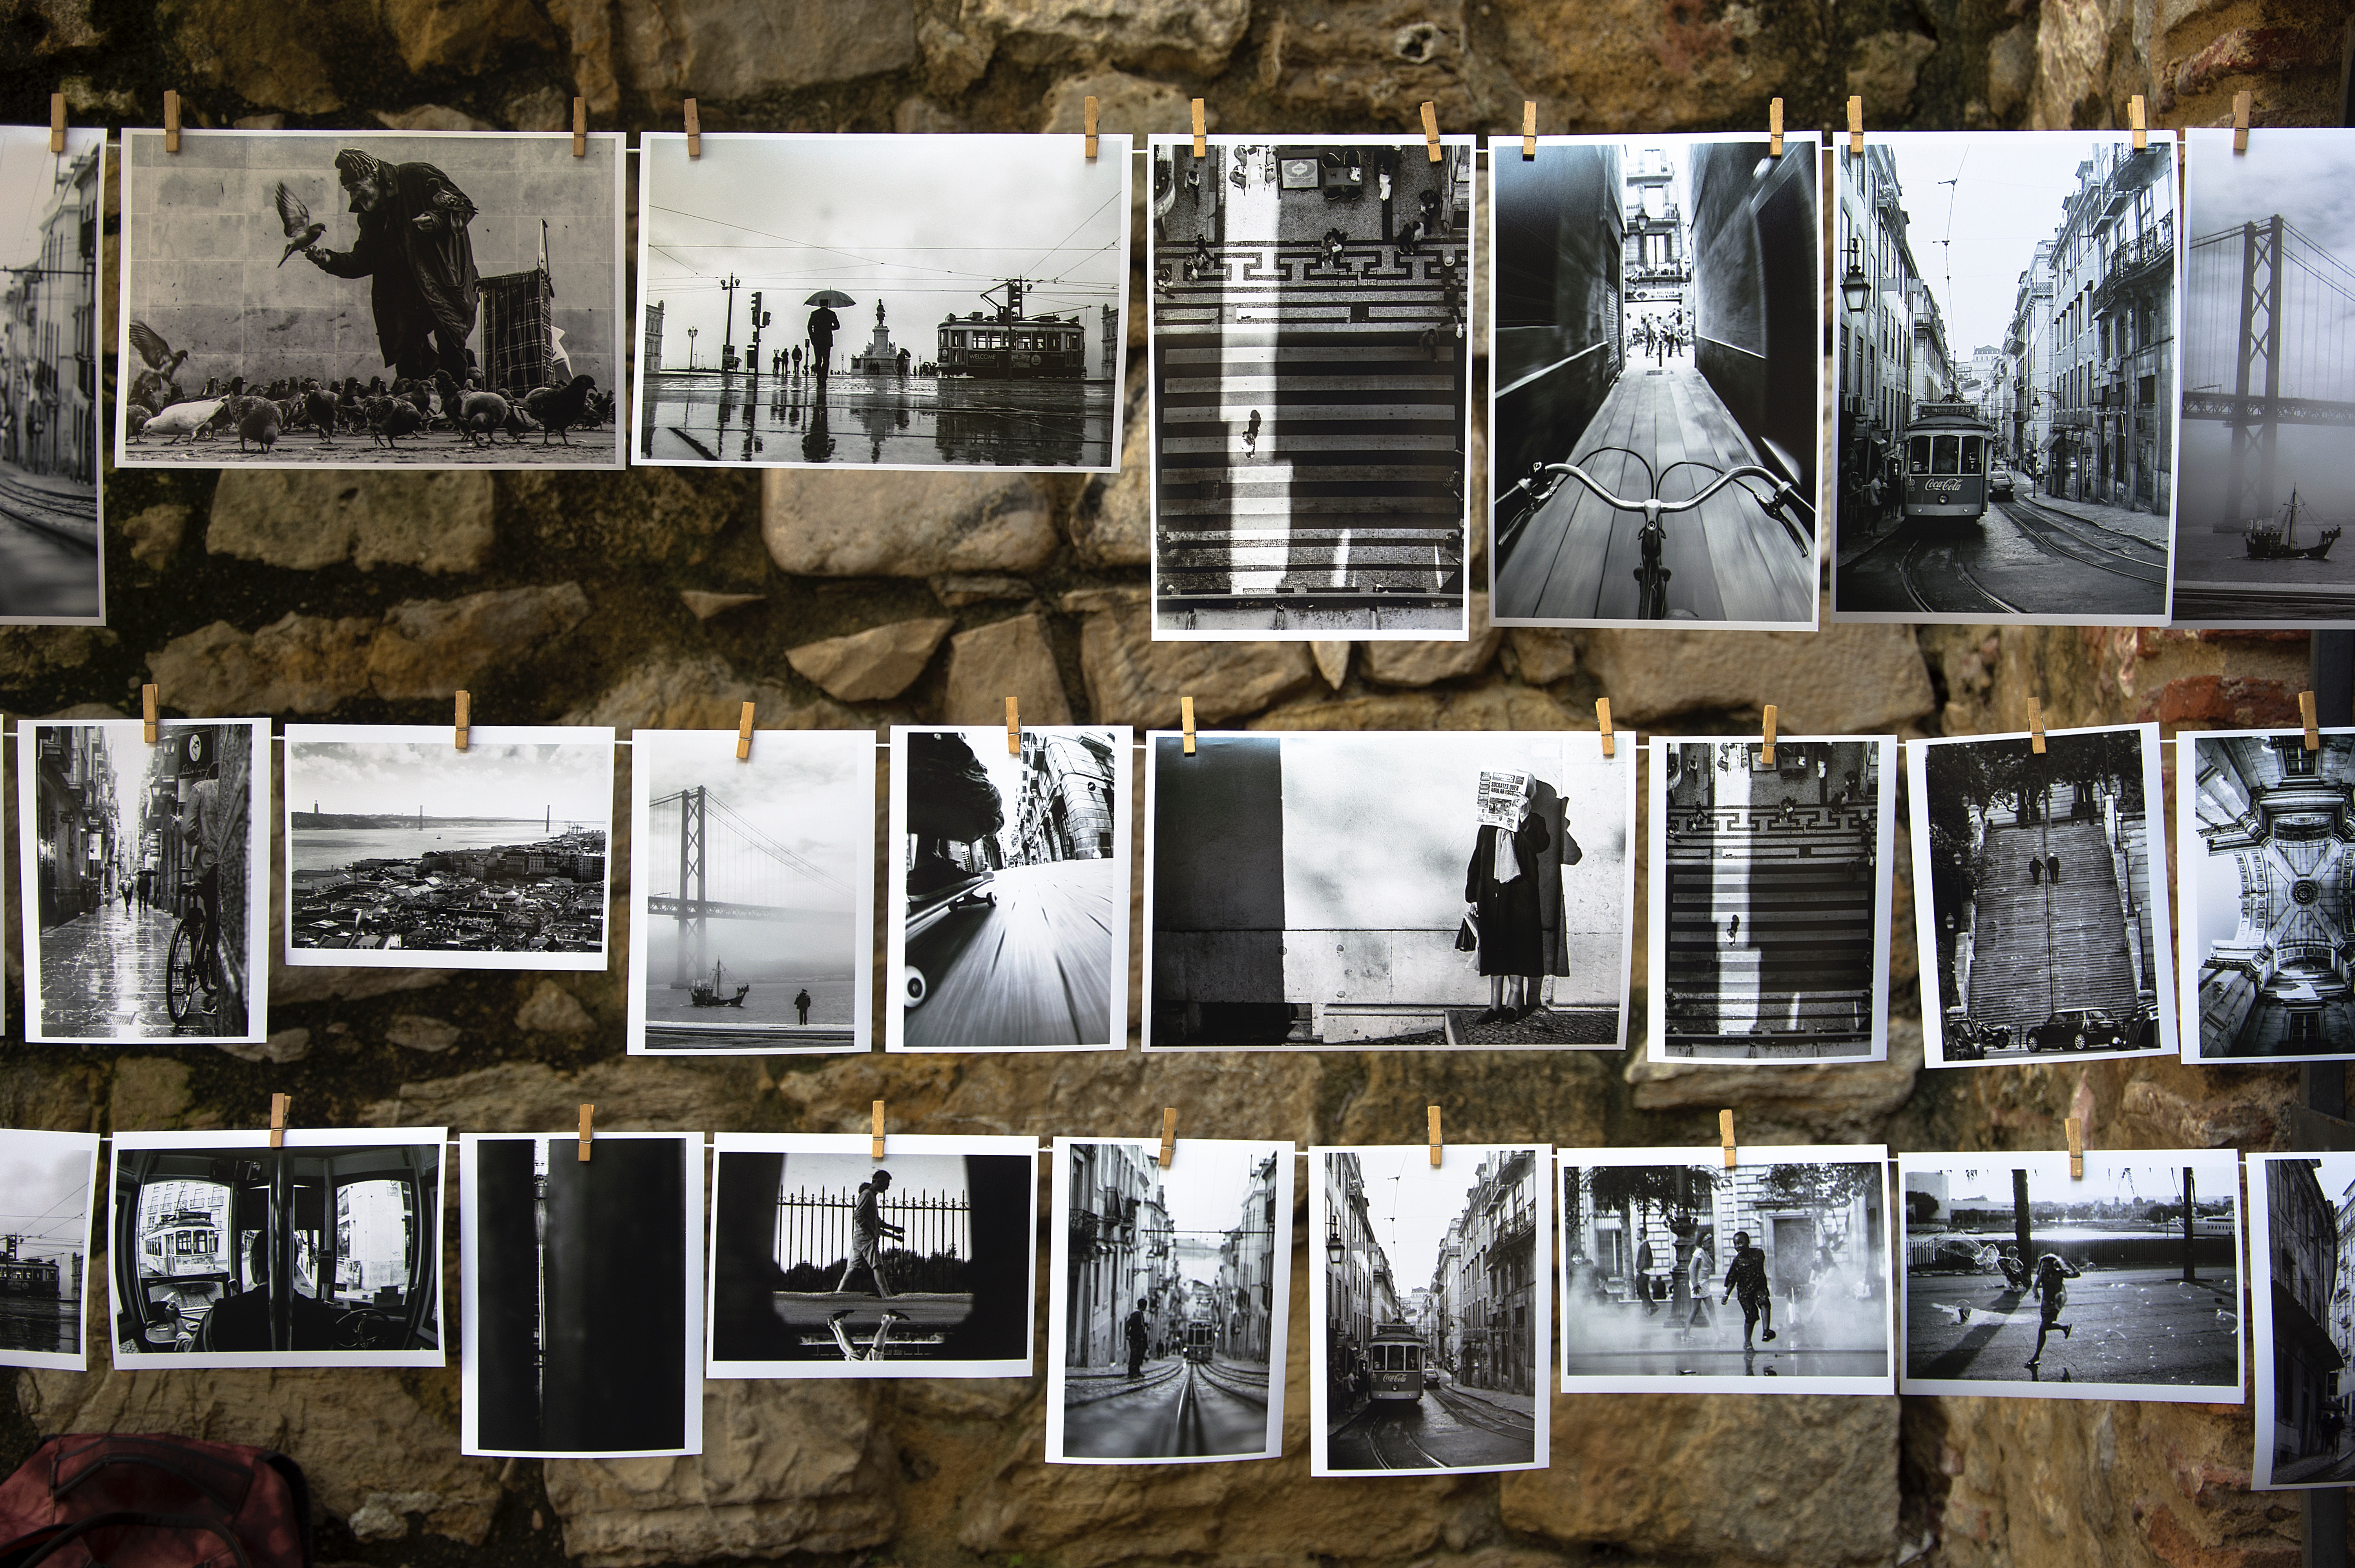 Collection of photographs pegged to washing line